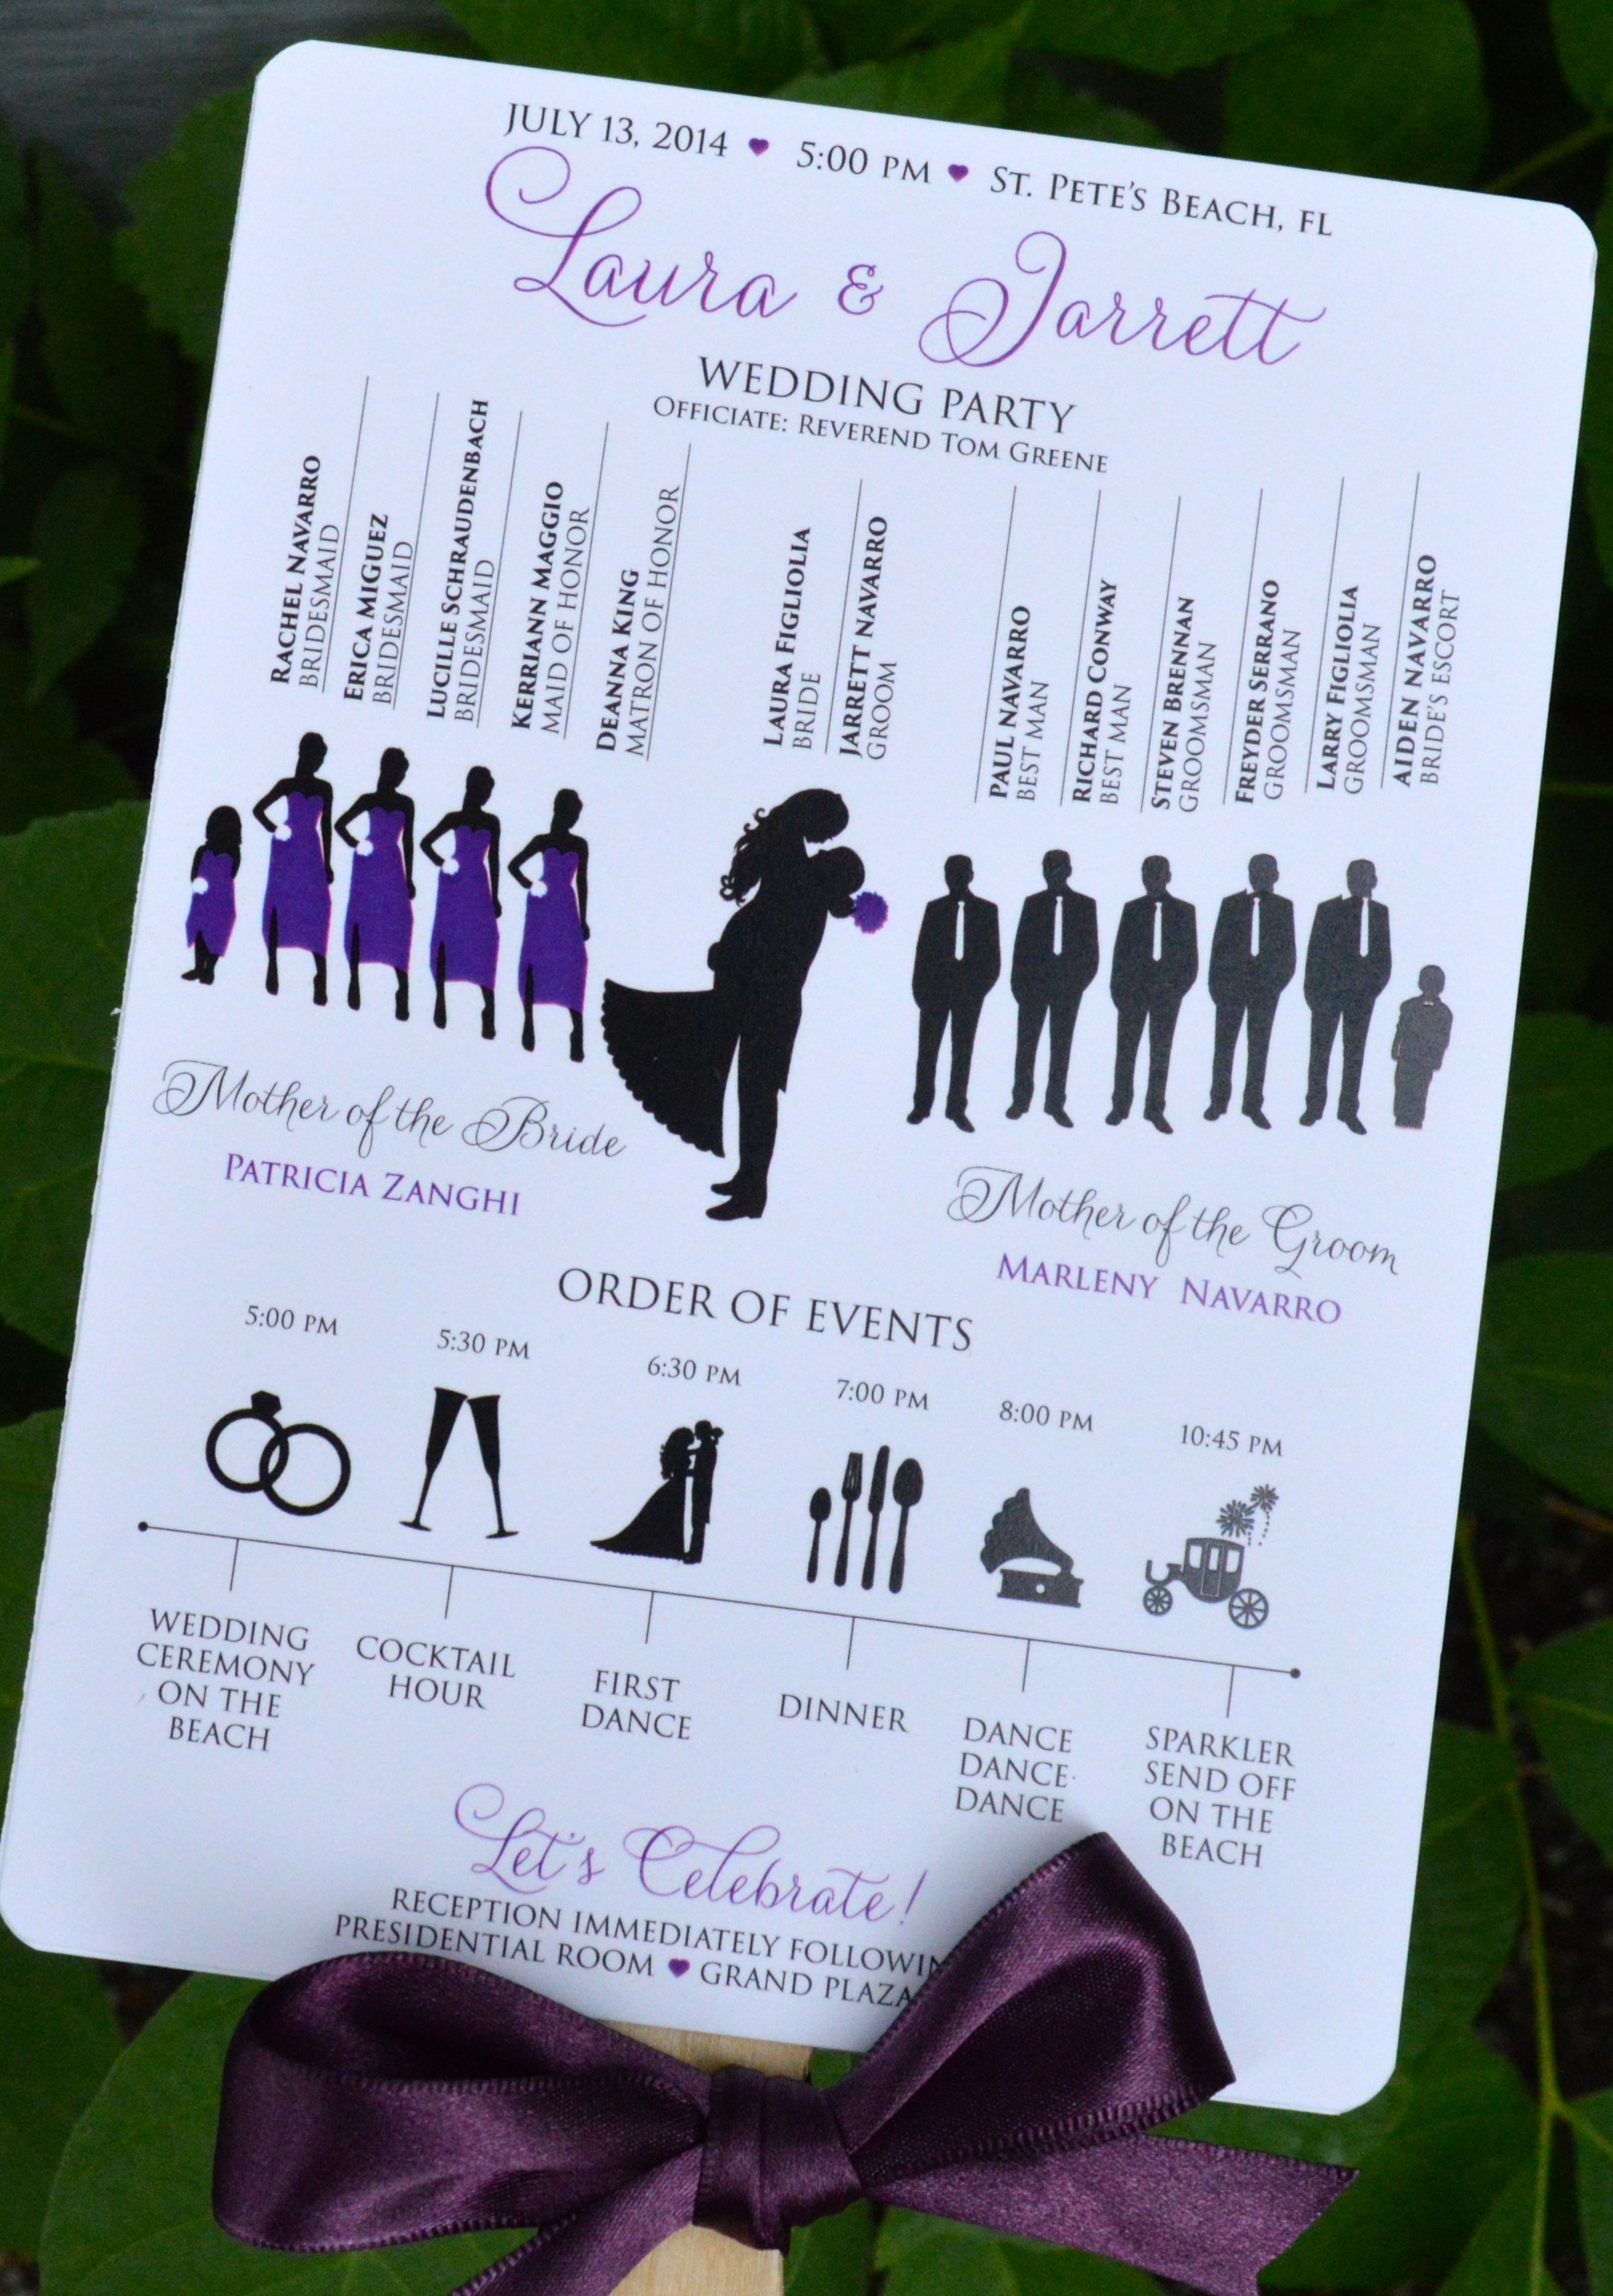 I like the idea of the pic of wedding party and night layout and fan